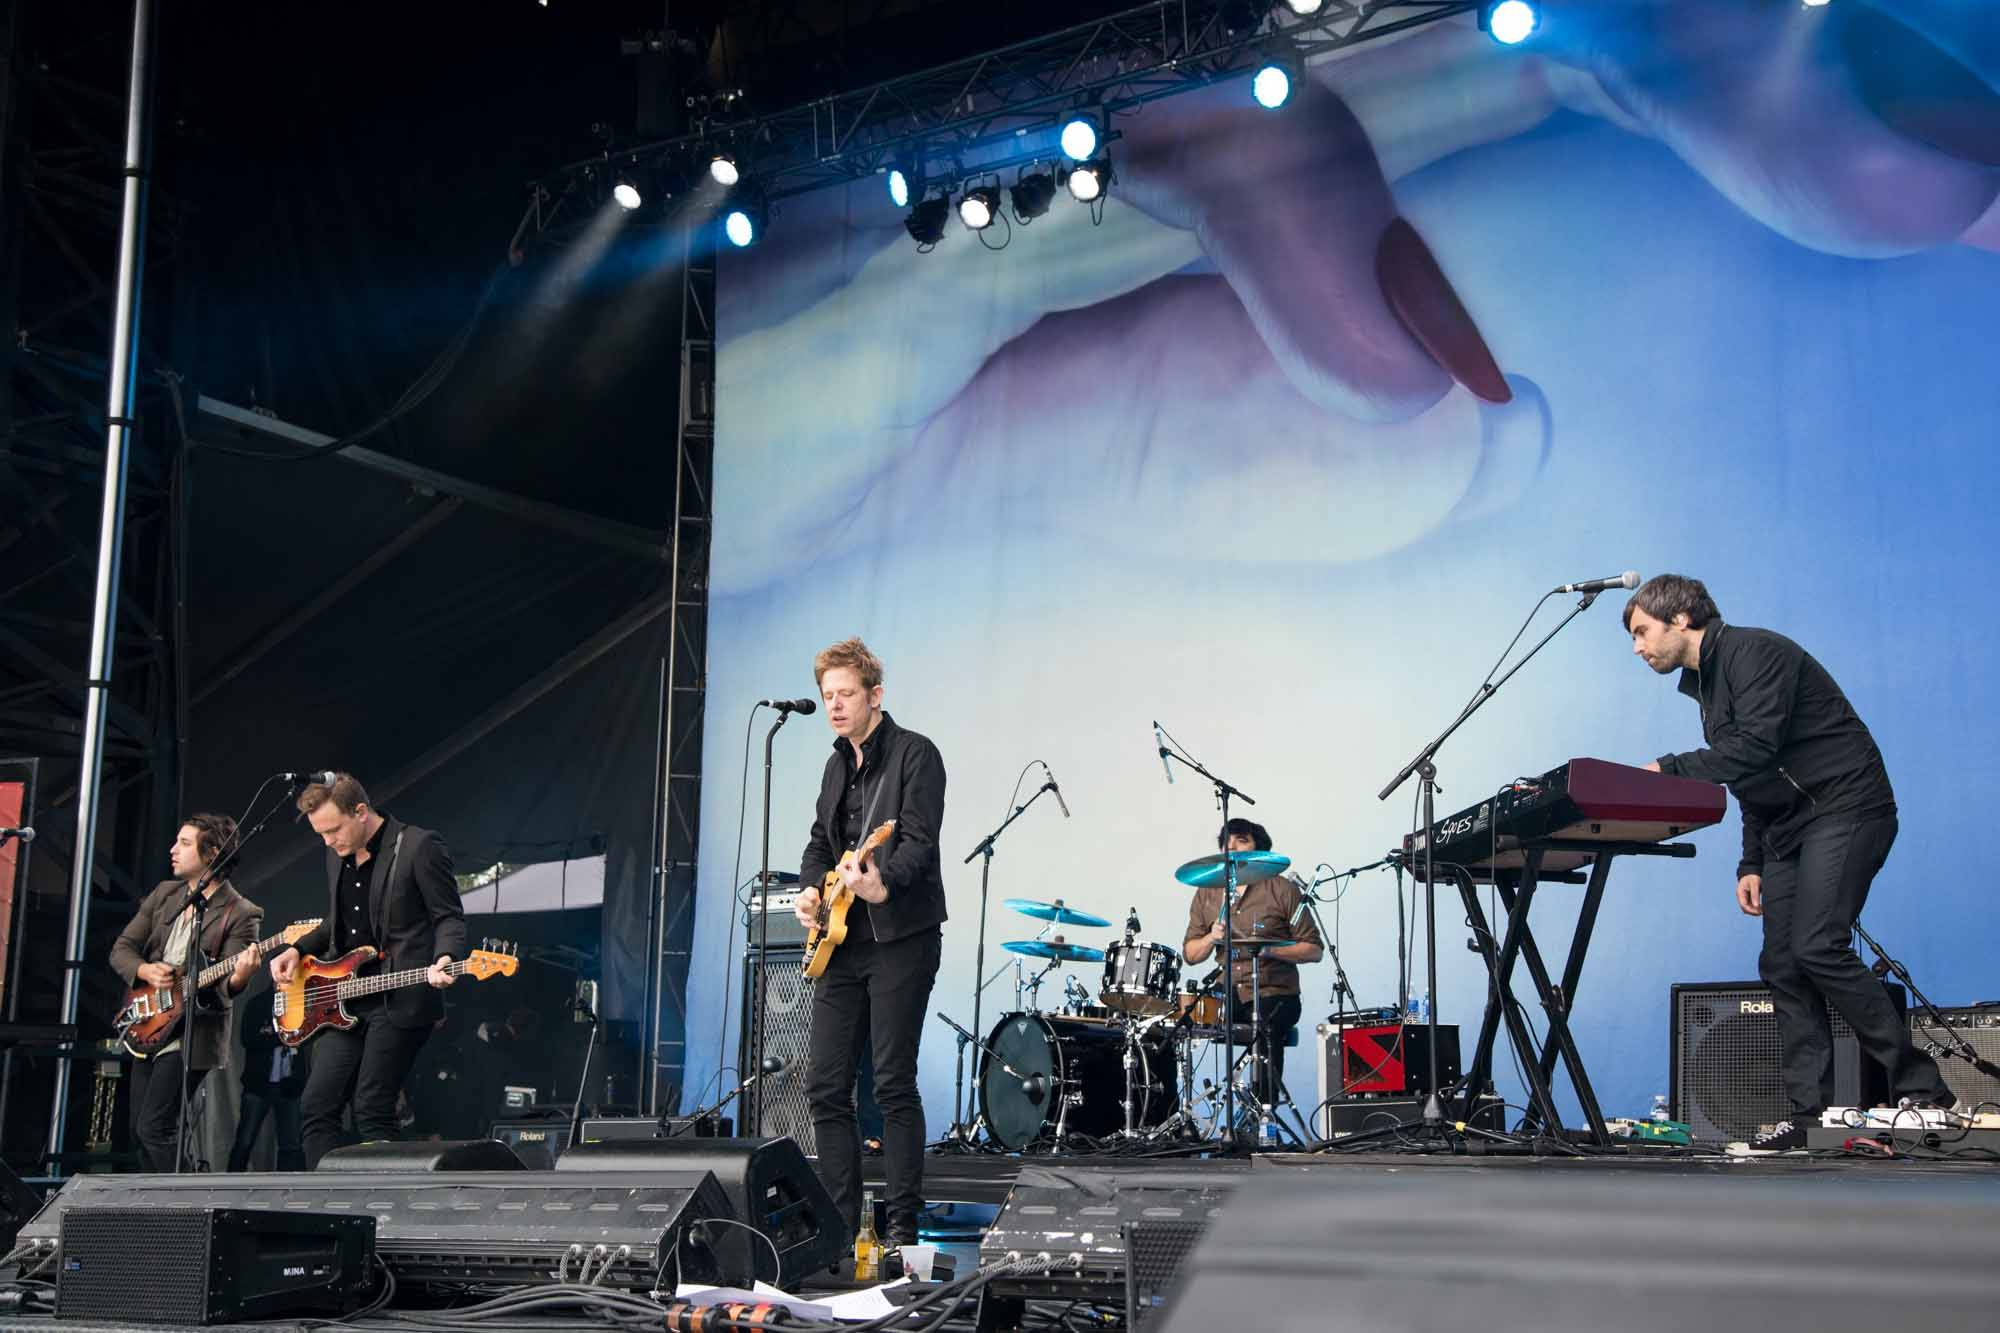 Spoon at Deer Lake Park, CBC Music Festival